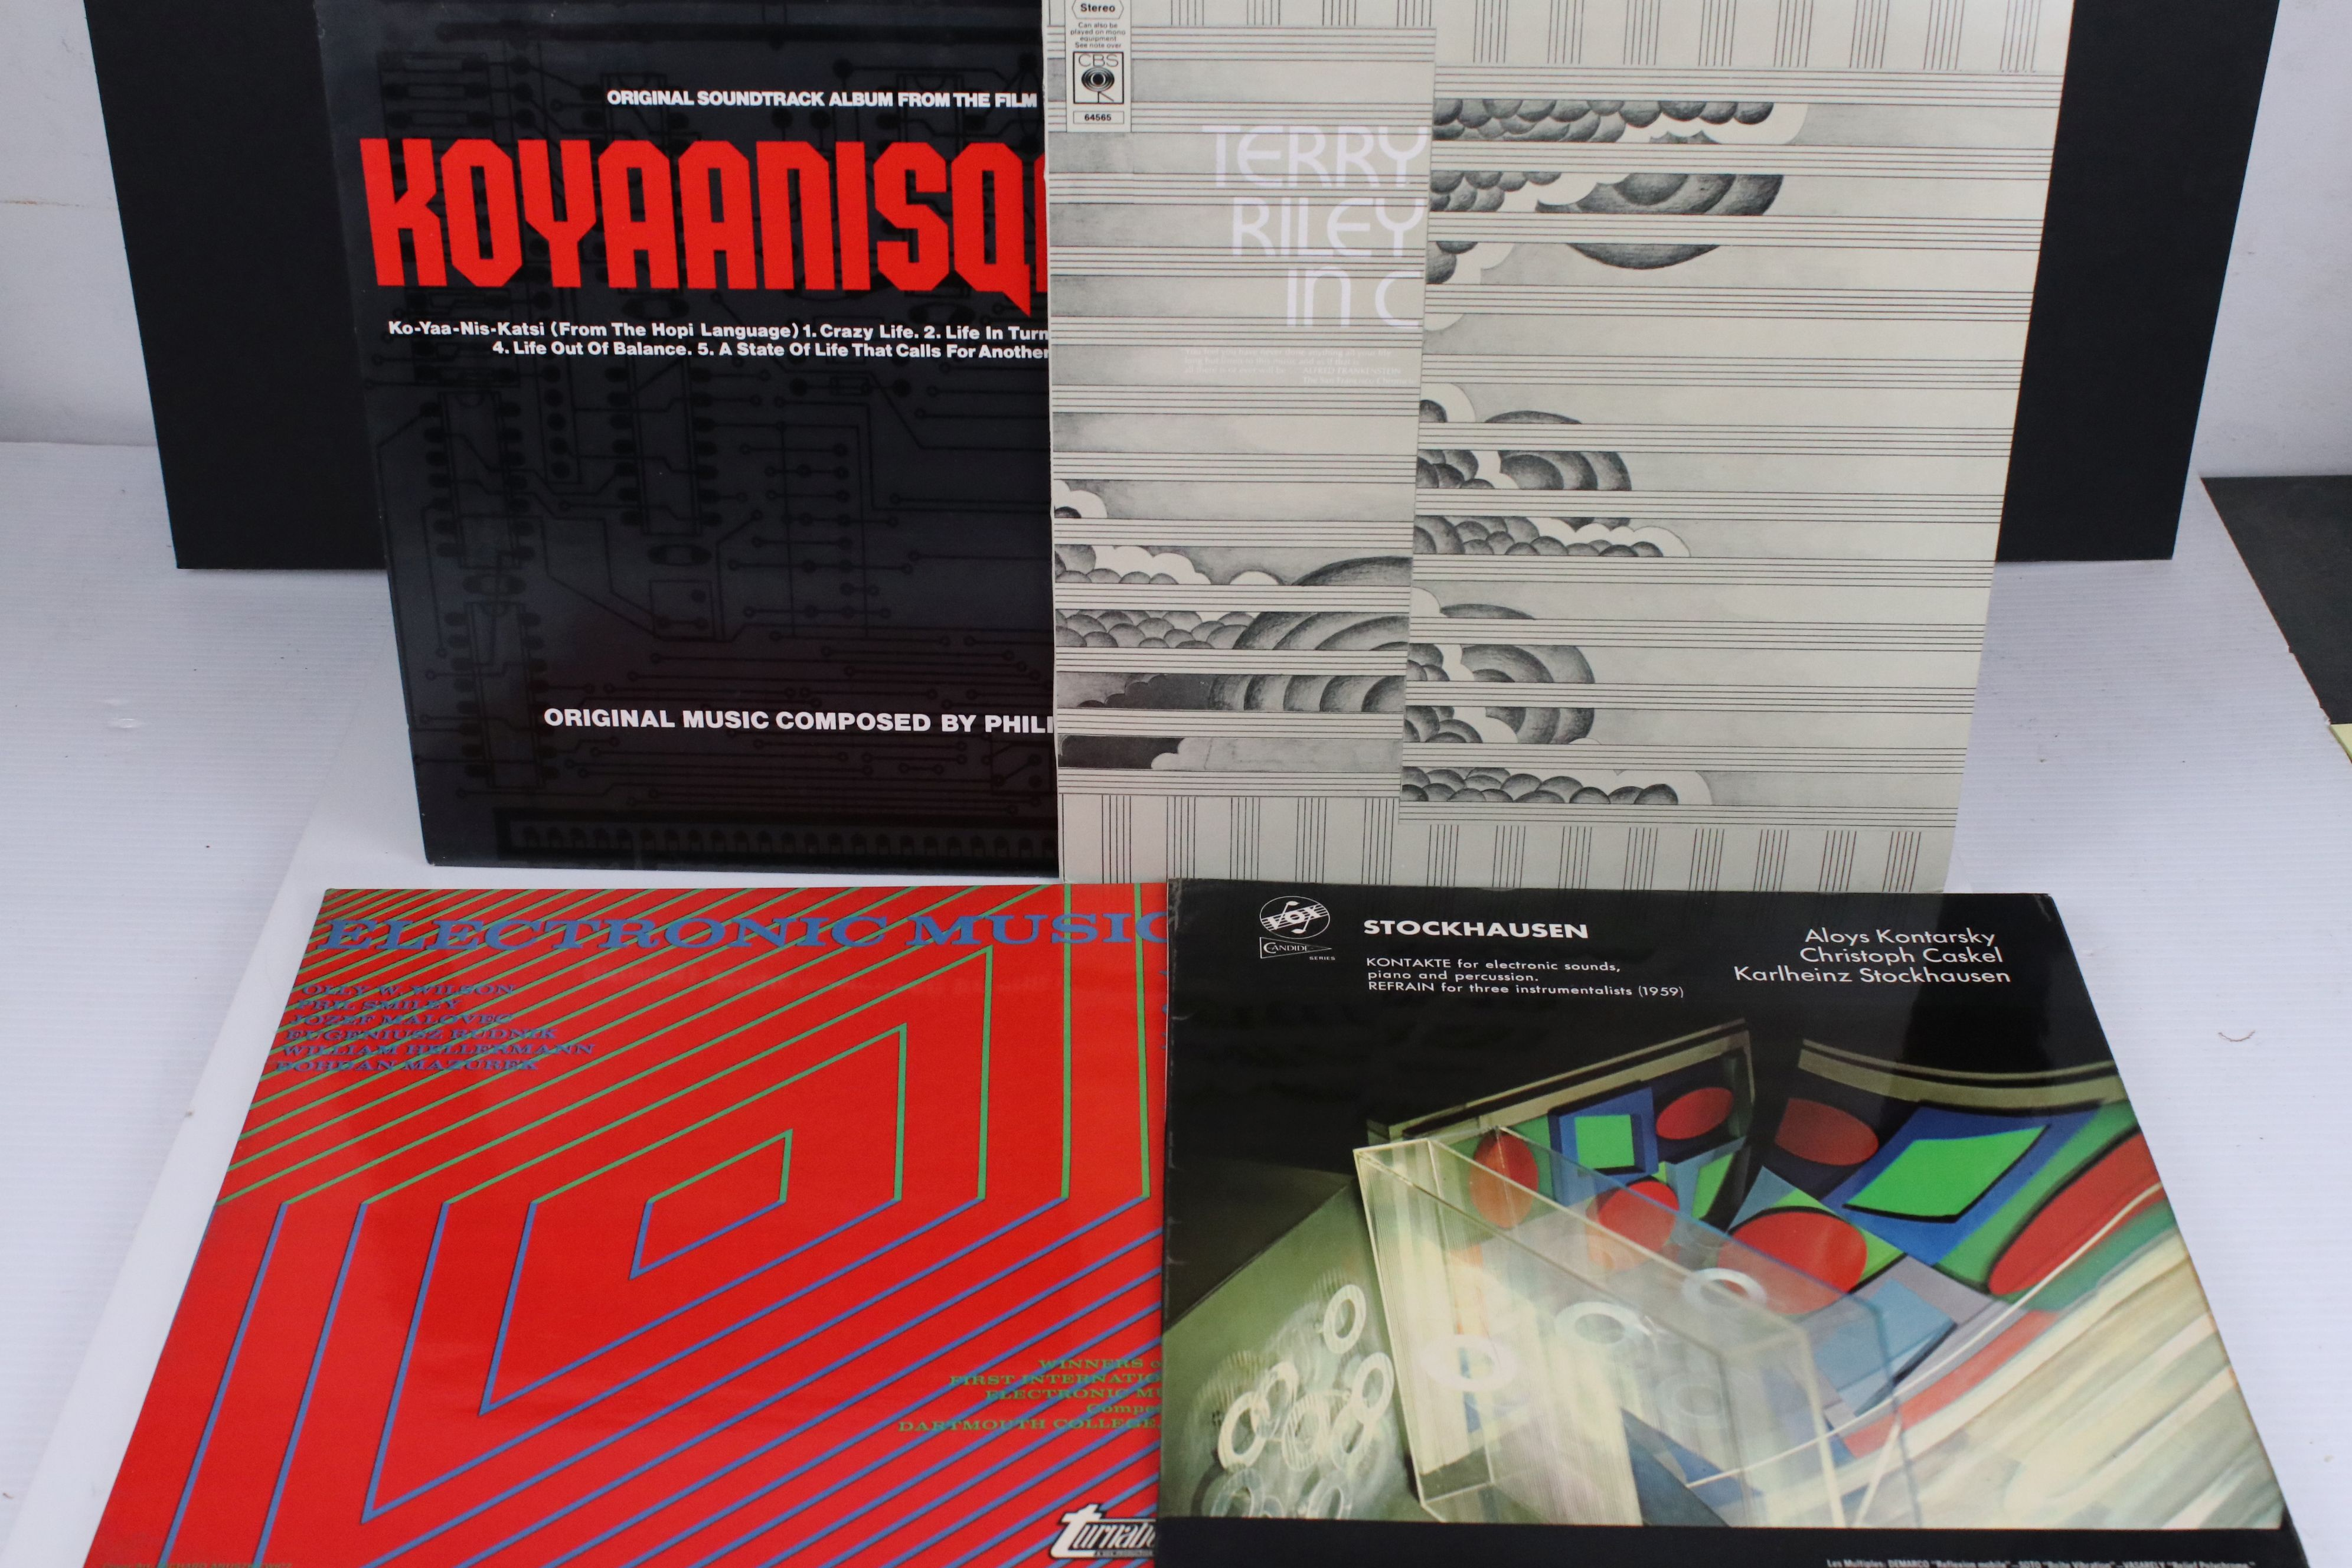 Vinyl - Four Electronic Classical LPs to include Terry Riley In C, Philip Glass Koyaanisqqatsi,